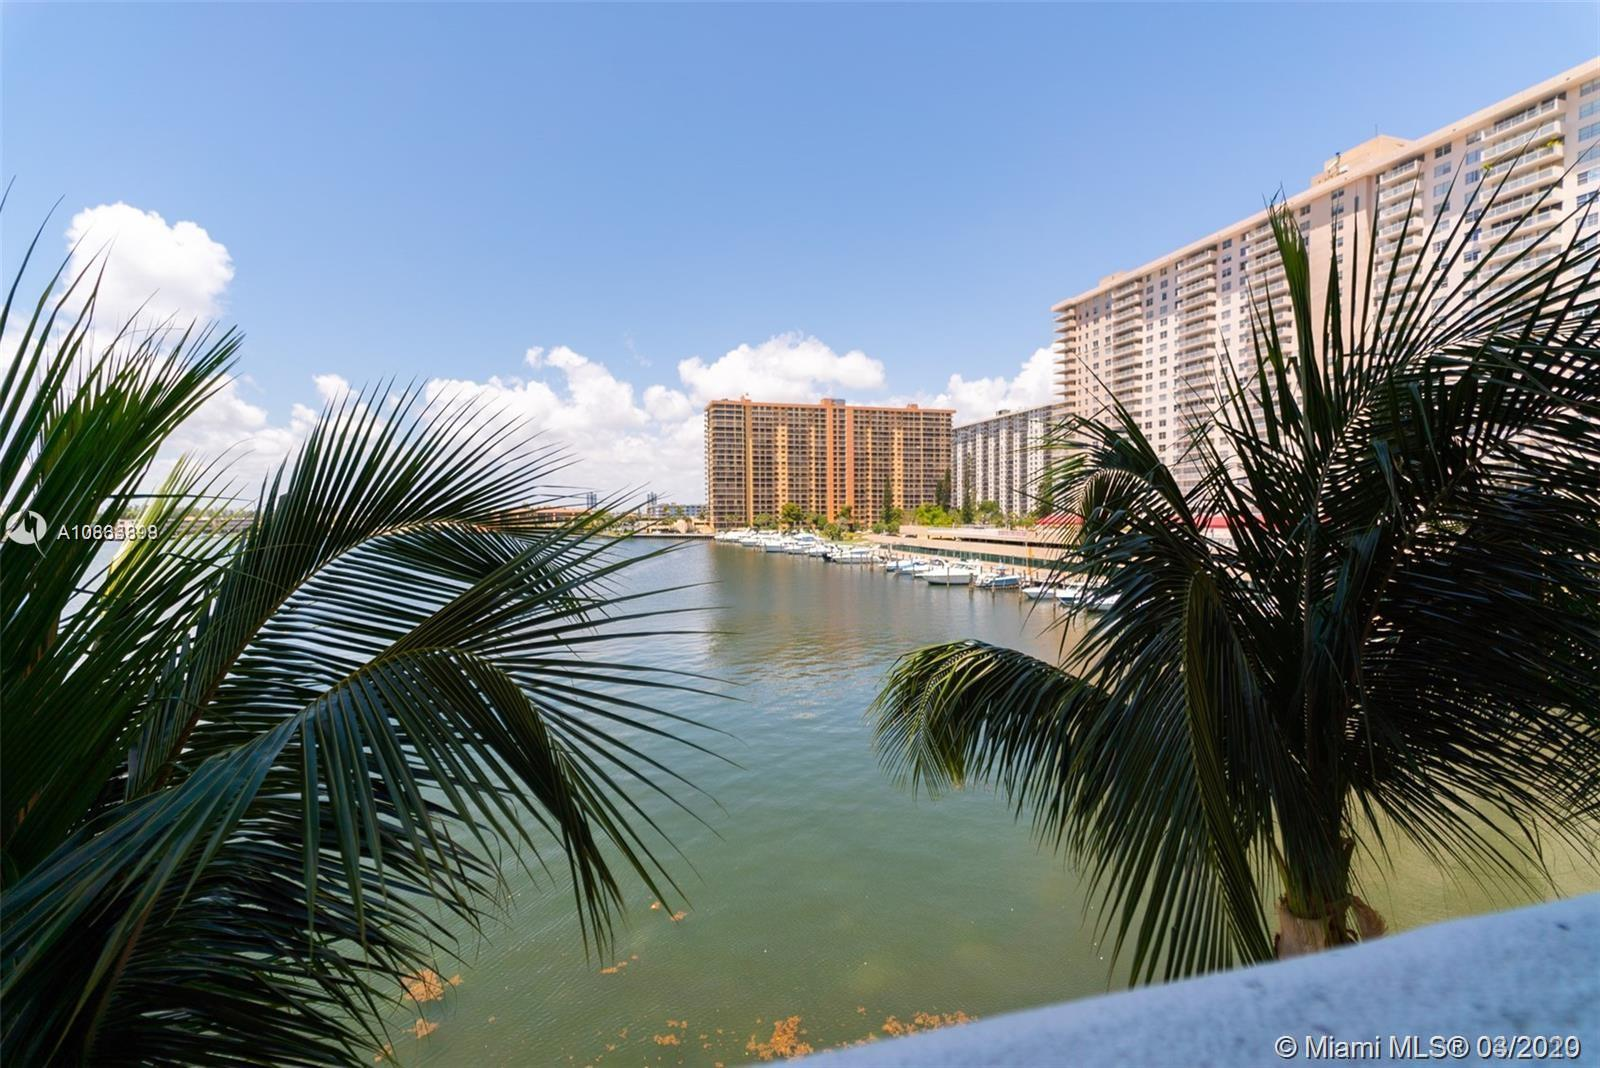 17150 N Bay Rd #2407 For Sale A10833398, FL